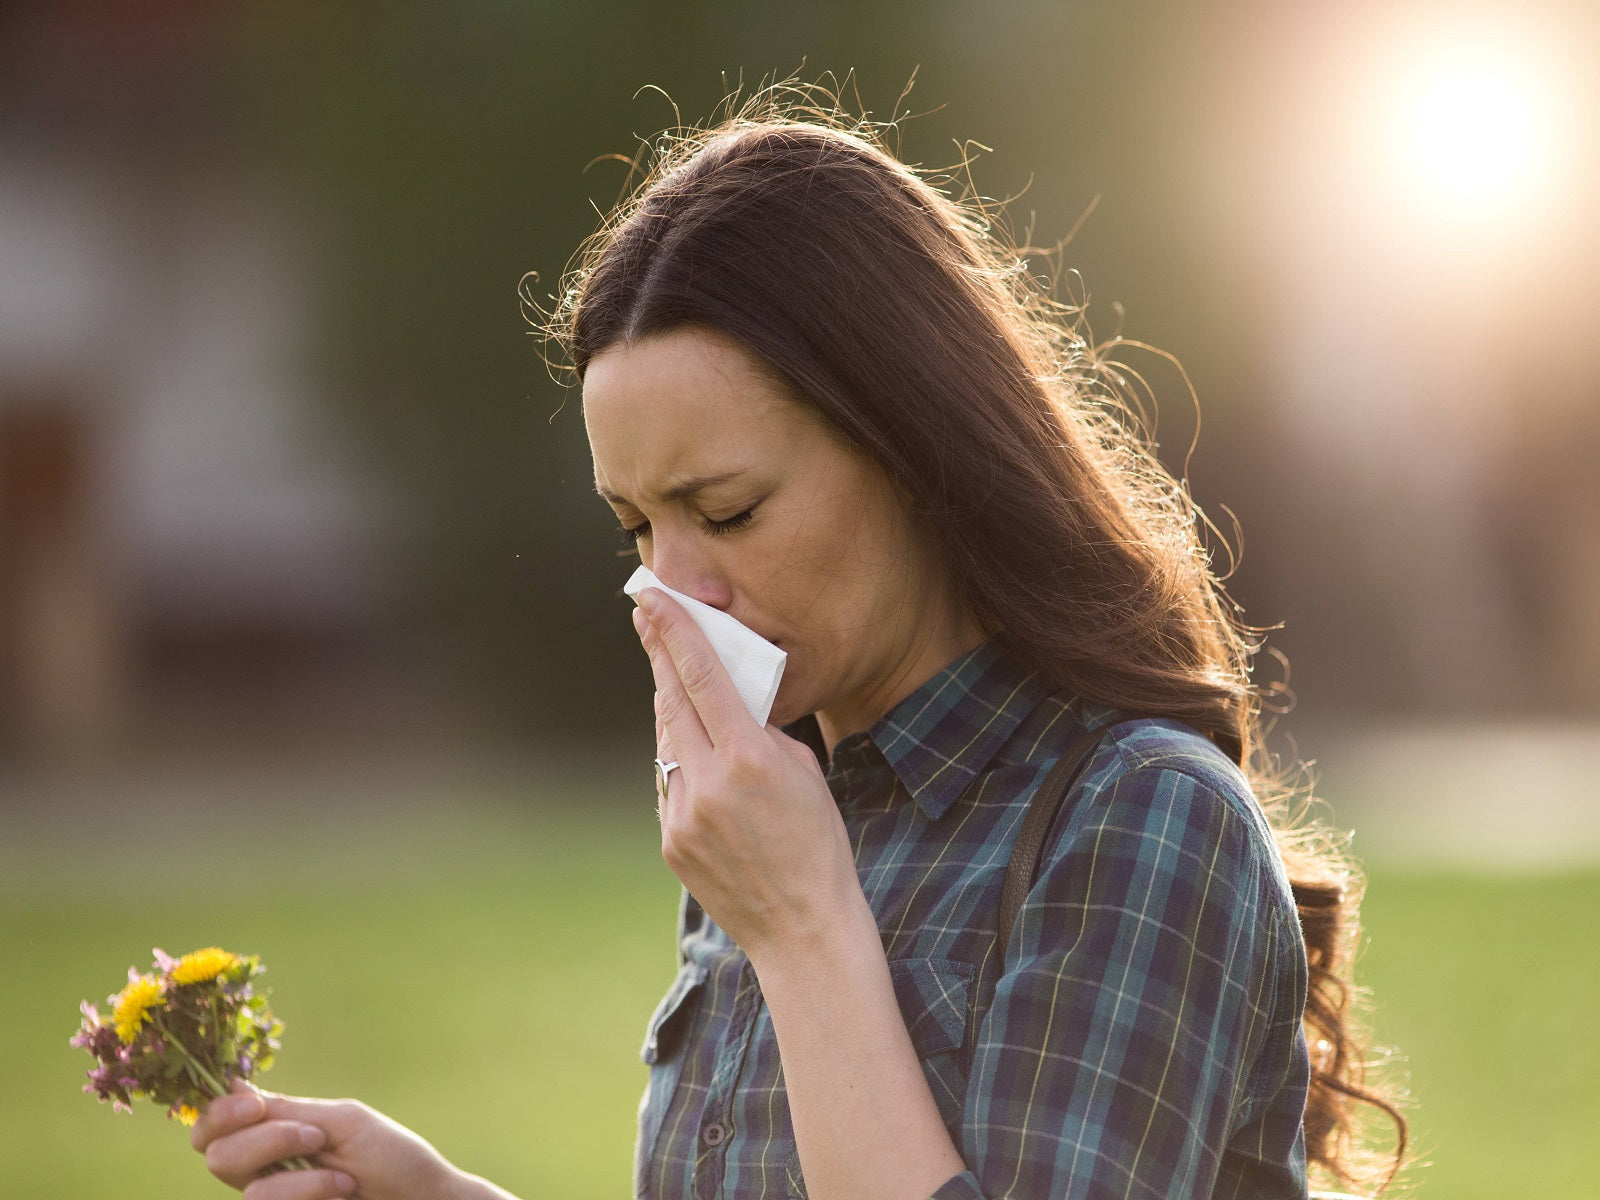 woman suffering from seasonal allergies